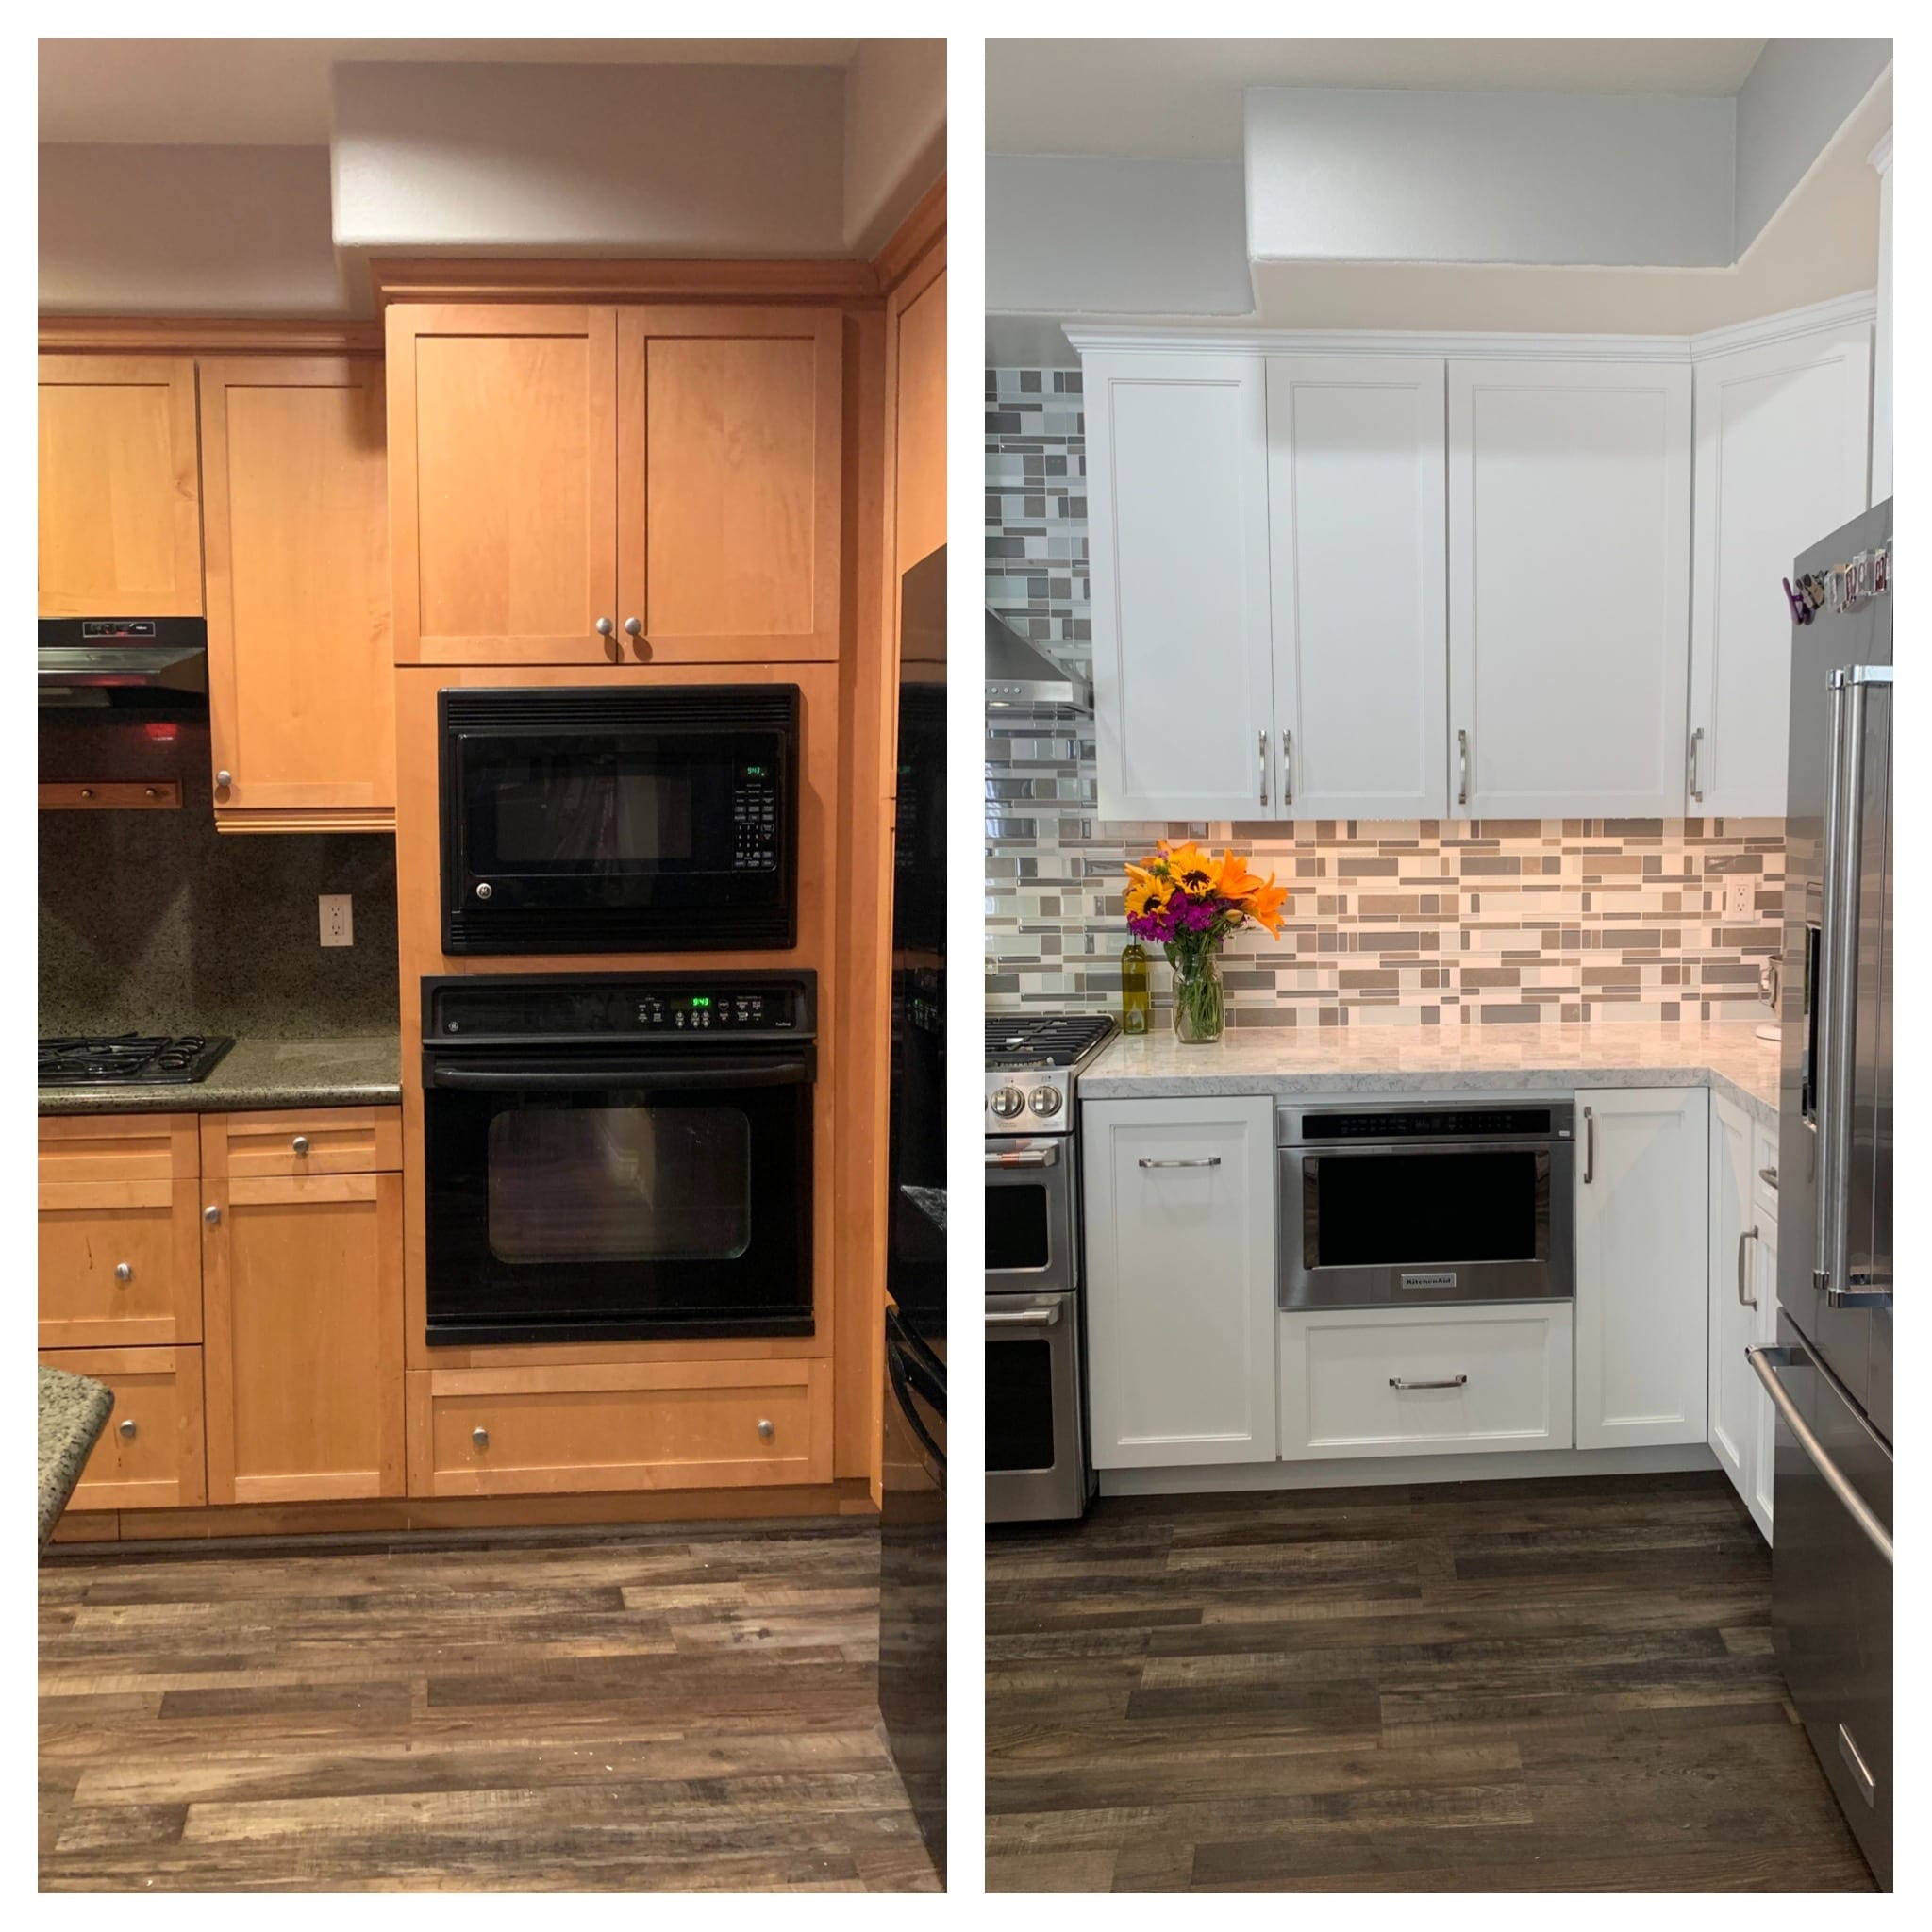 Baker's BEFORE AND AFTER Kitchen